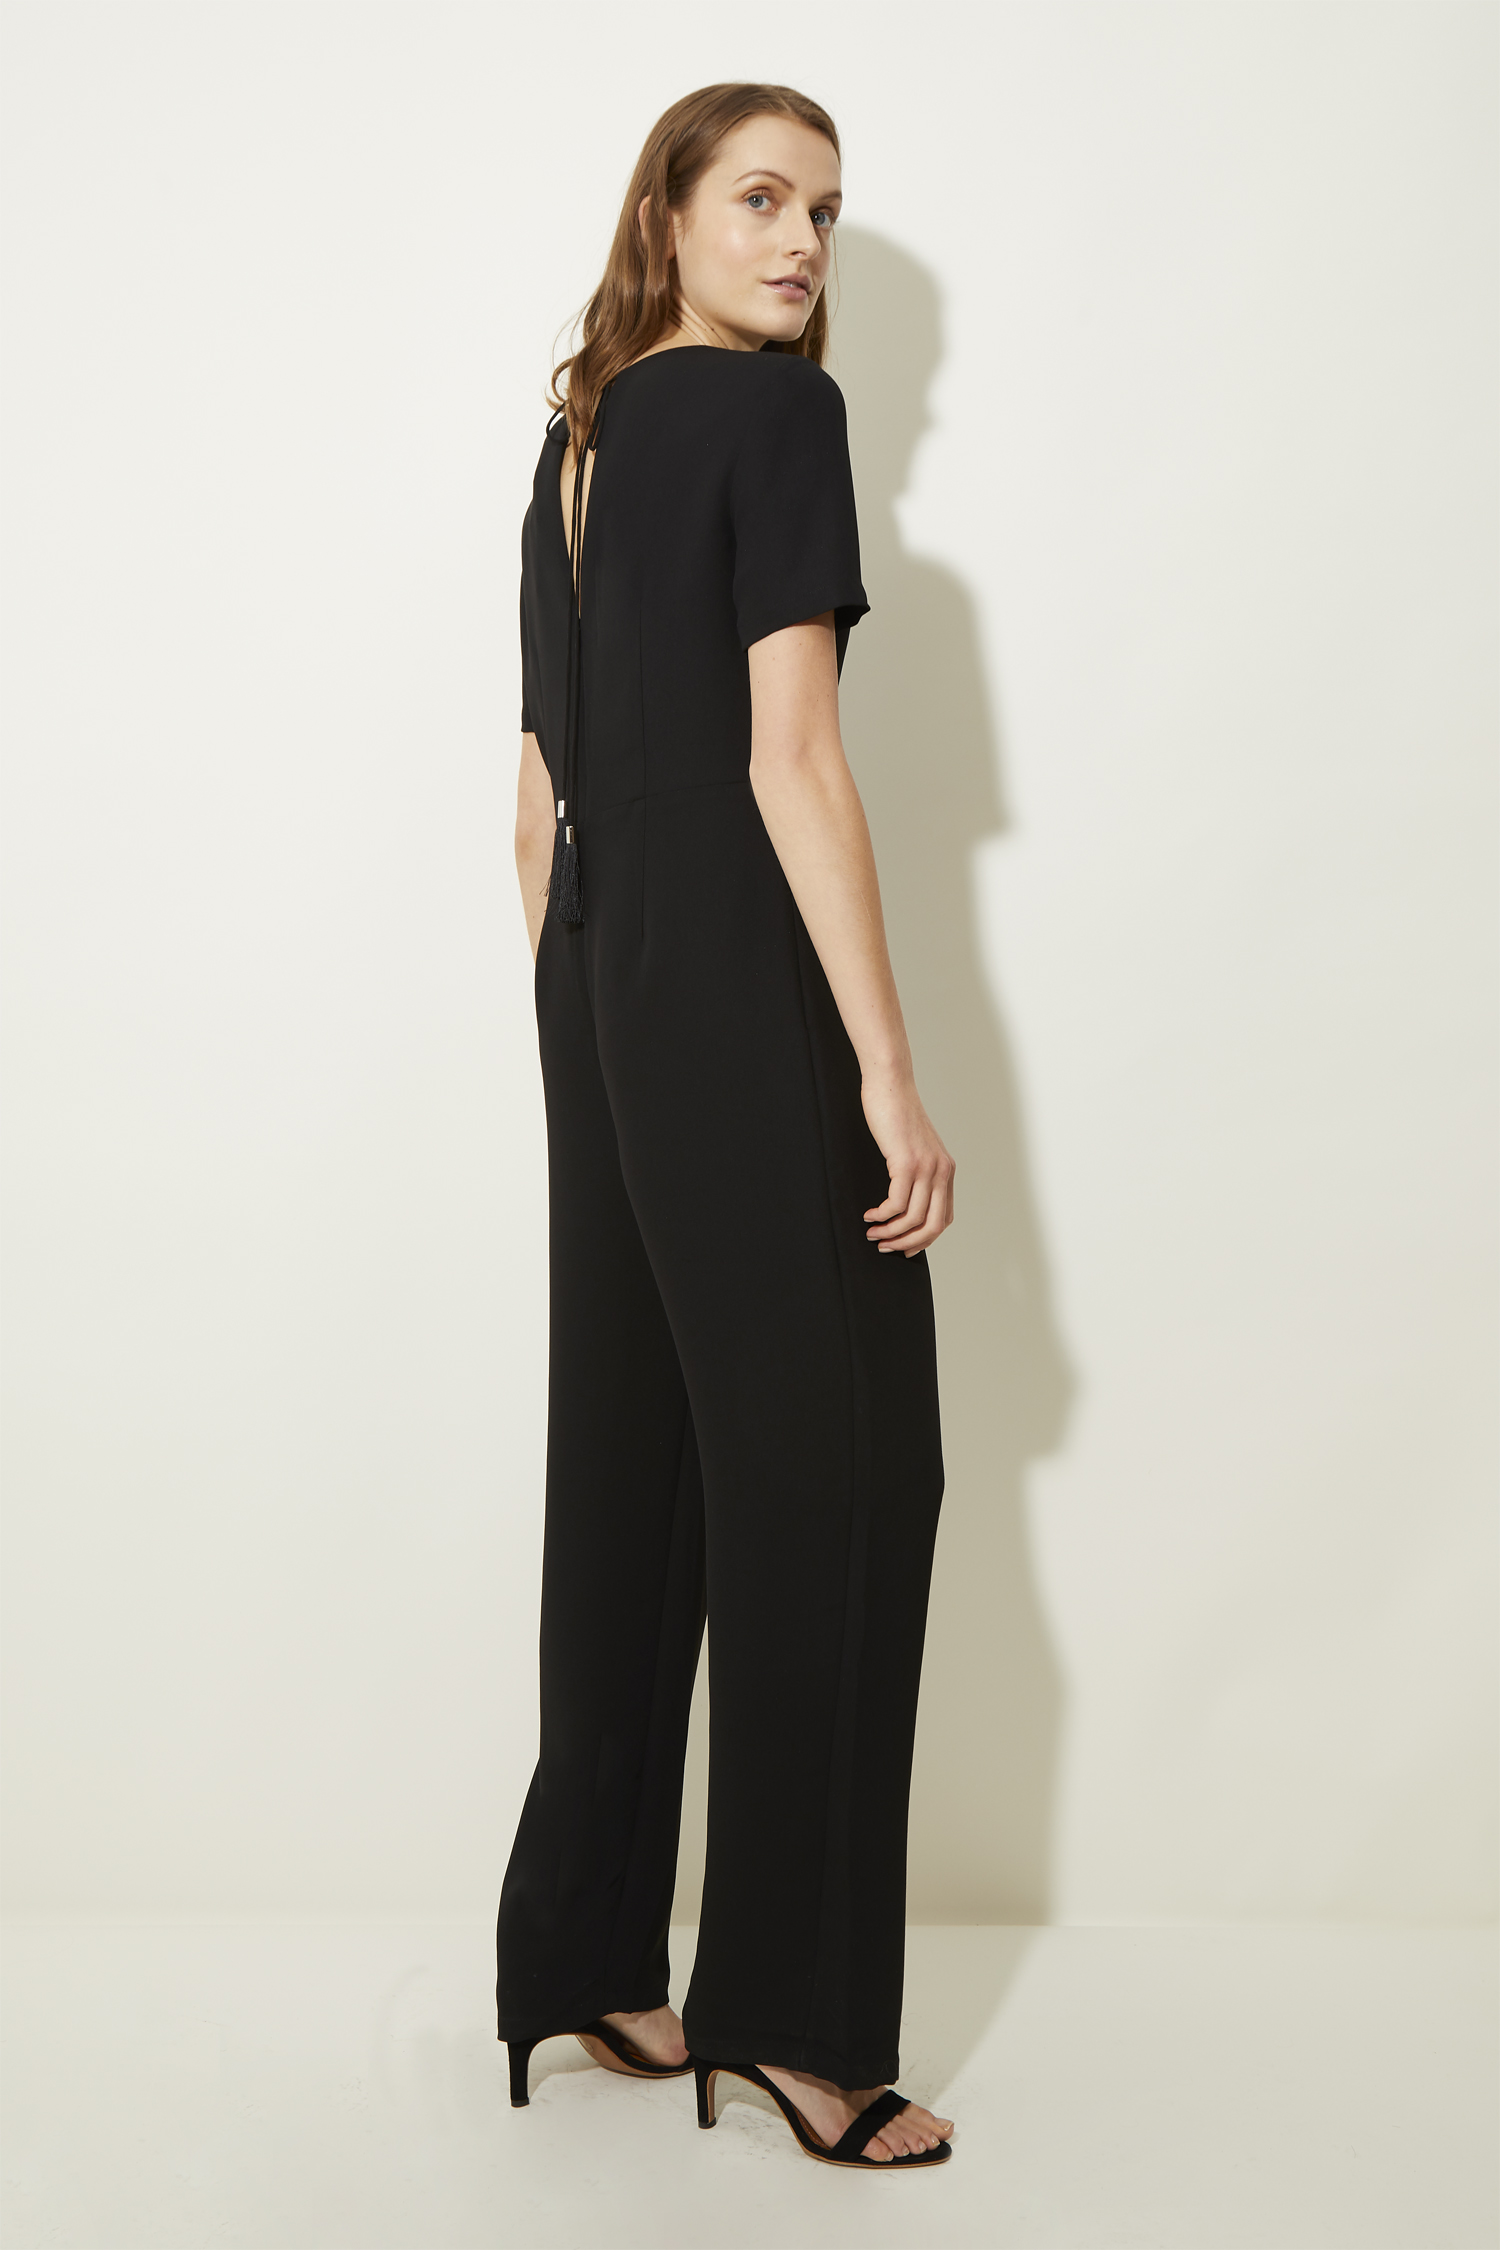 women's black jumpsuits